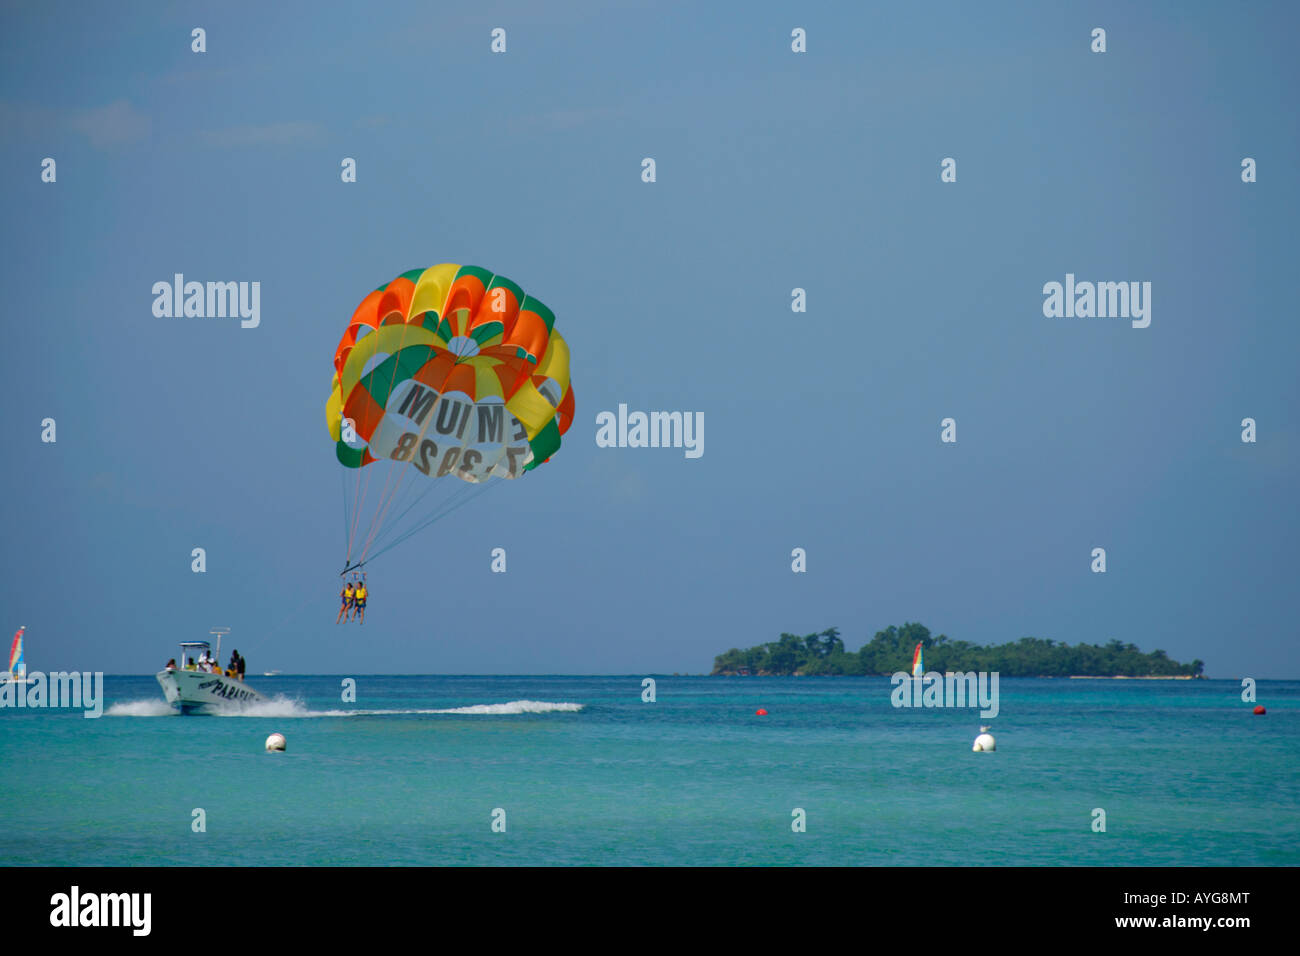 Jamaica Negril beach Parasailing boat Stock Photo